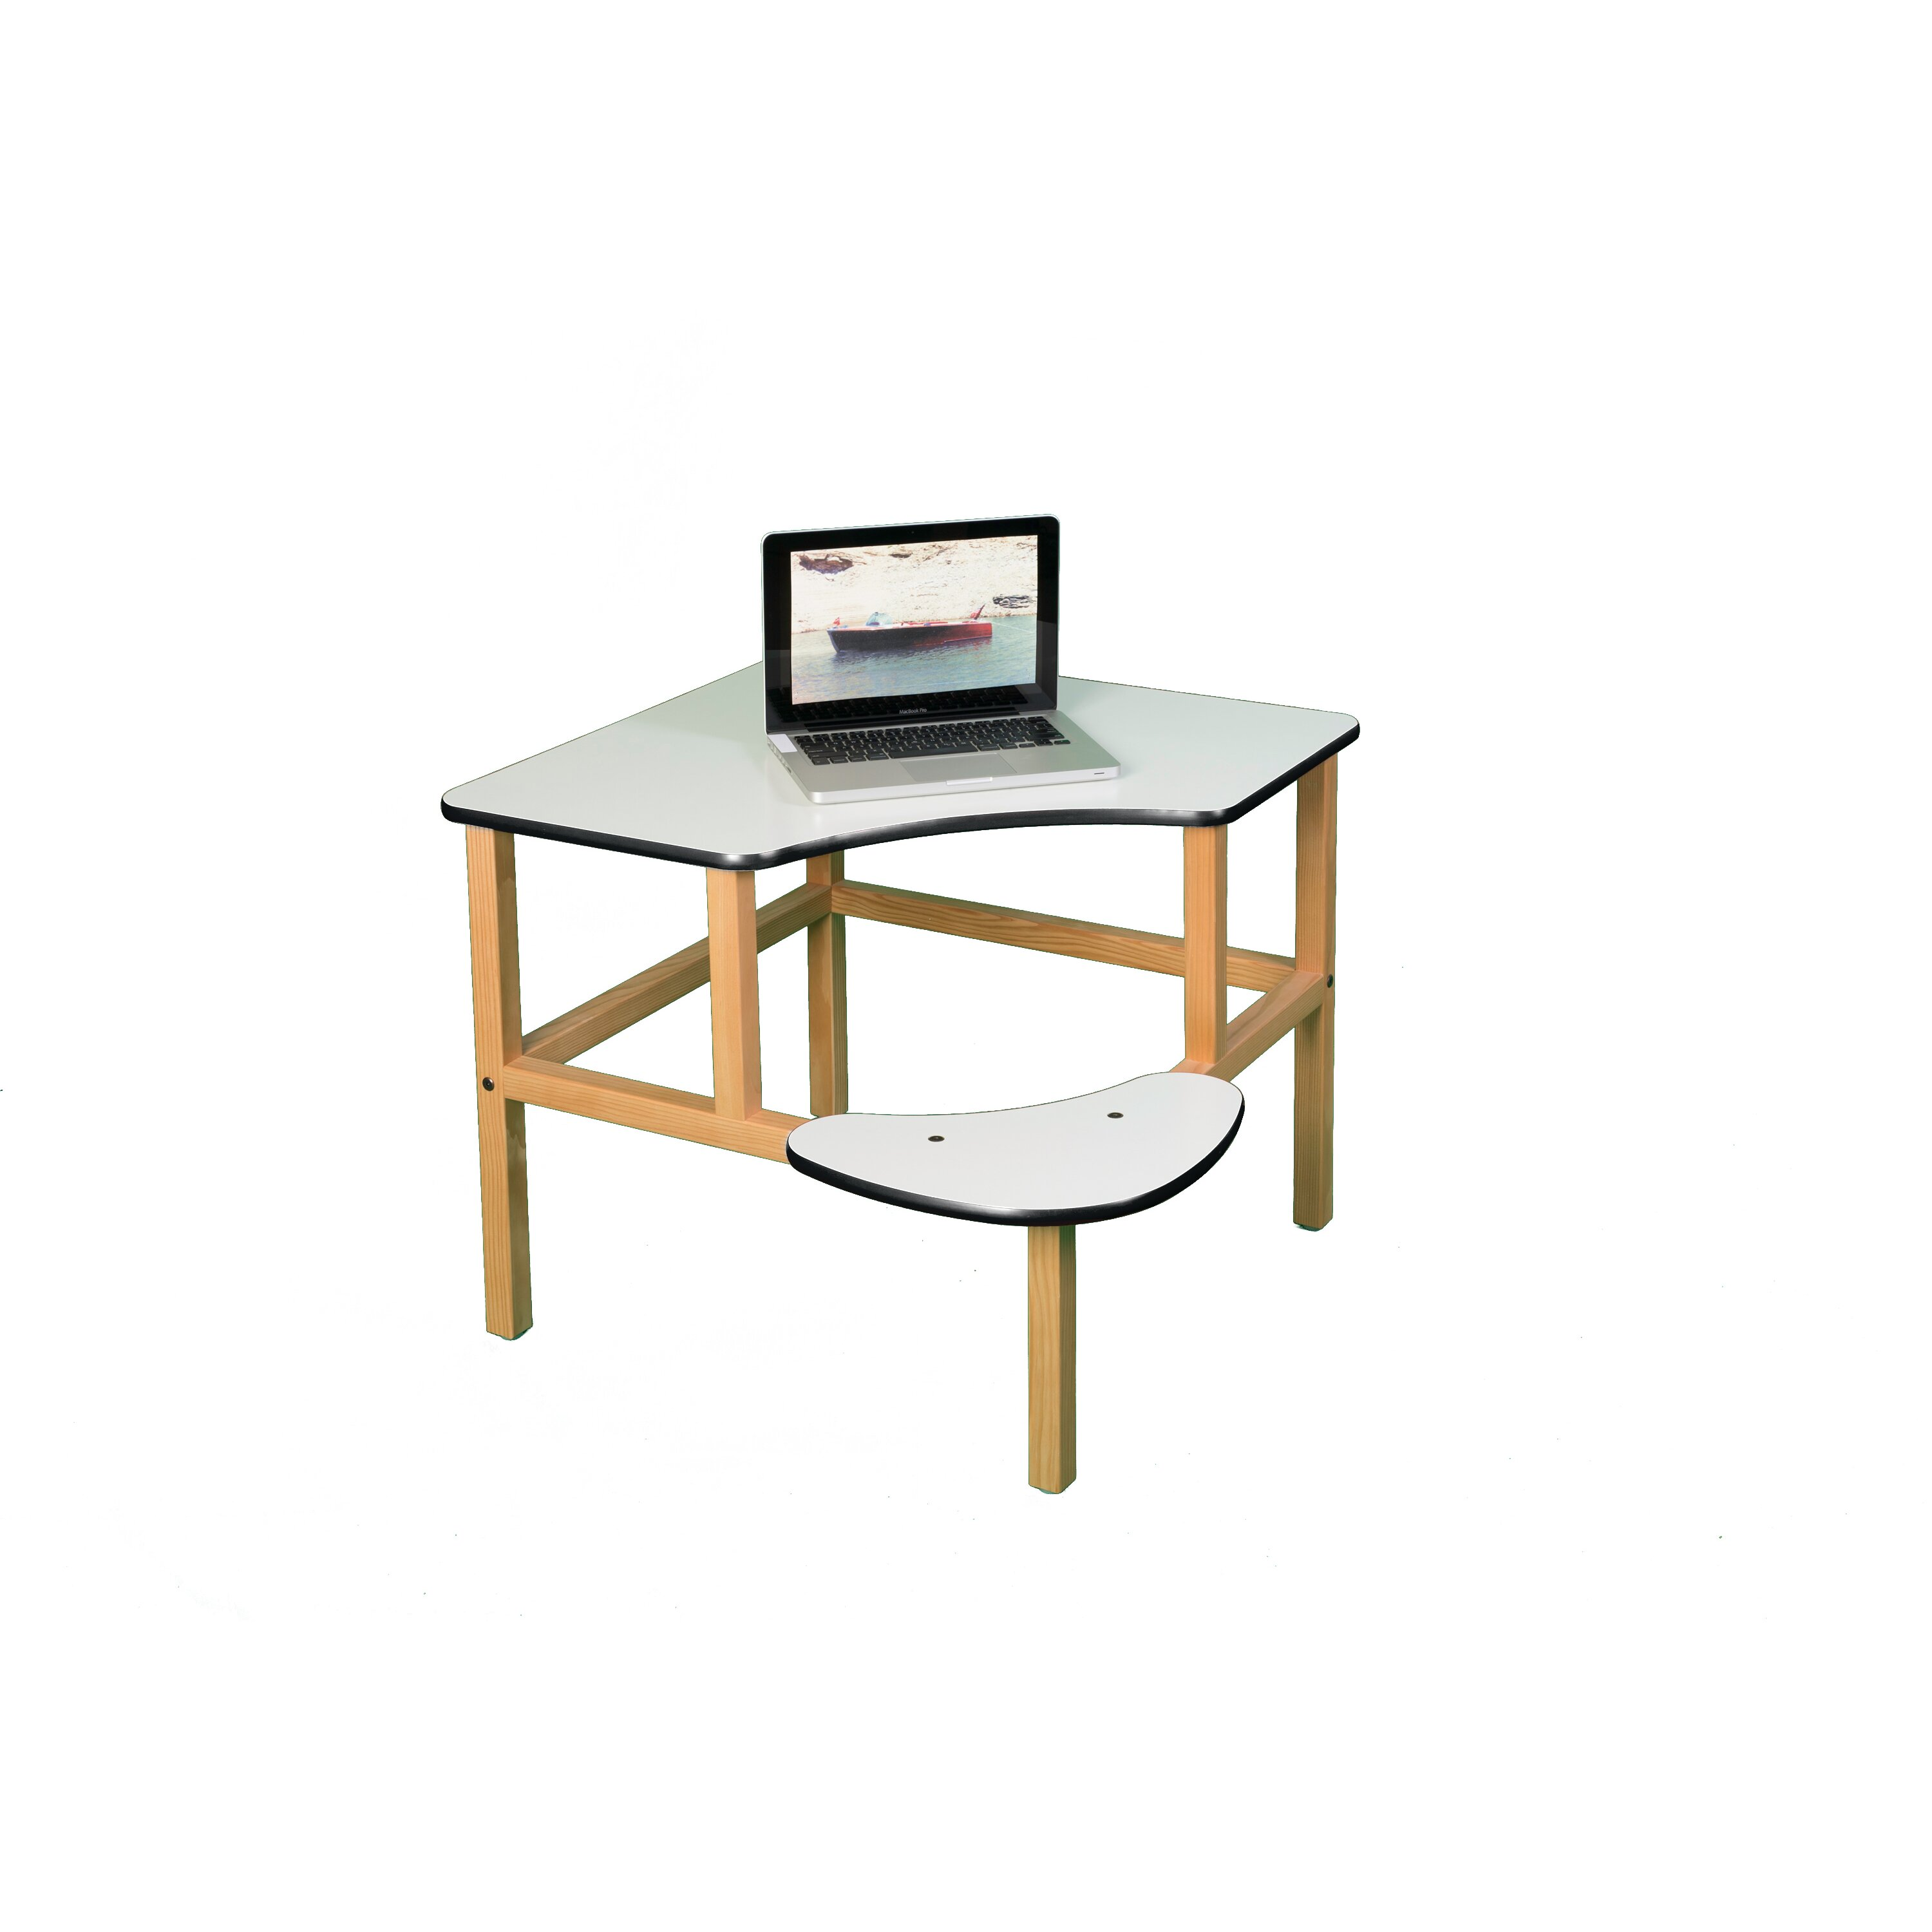 Marvelous photograph of  Zoo Adventure Series 32 Childrens Corner Writing Desk corner desk.jpg with #9C682F color and 3000x3000 pixels